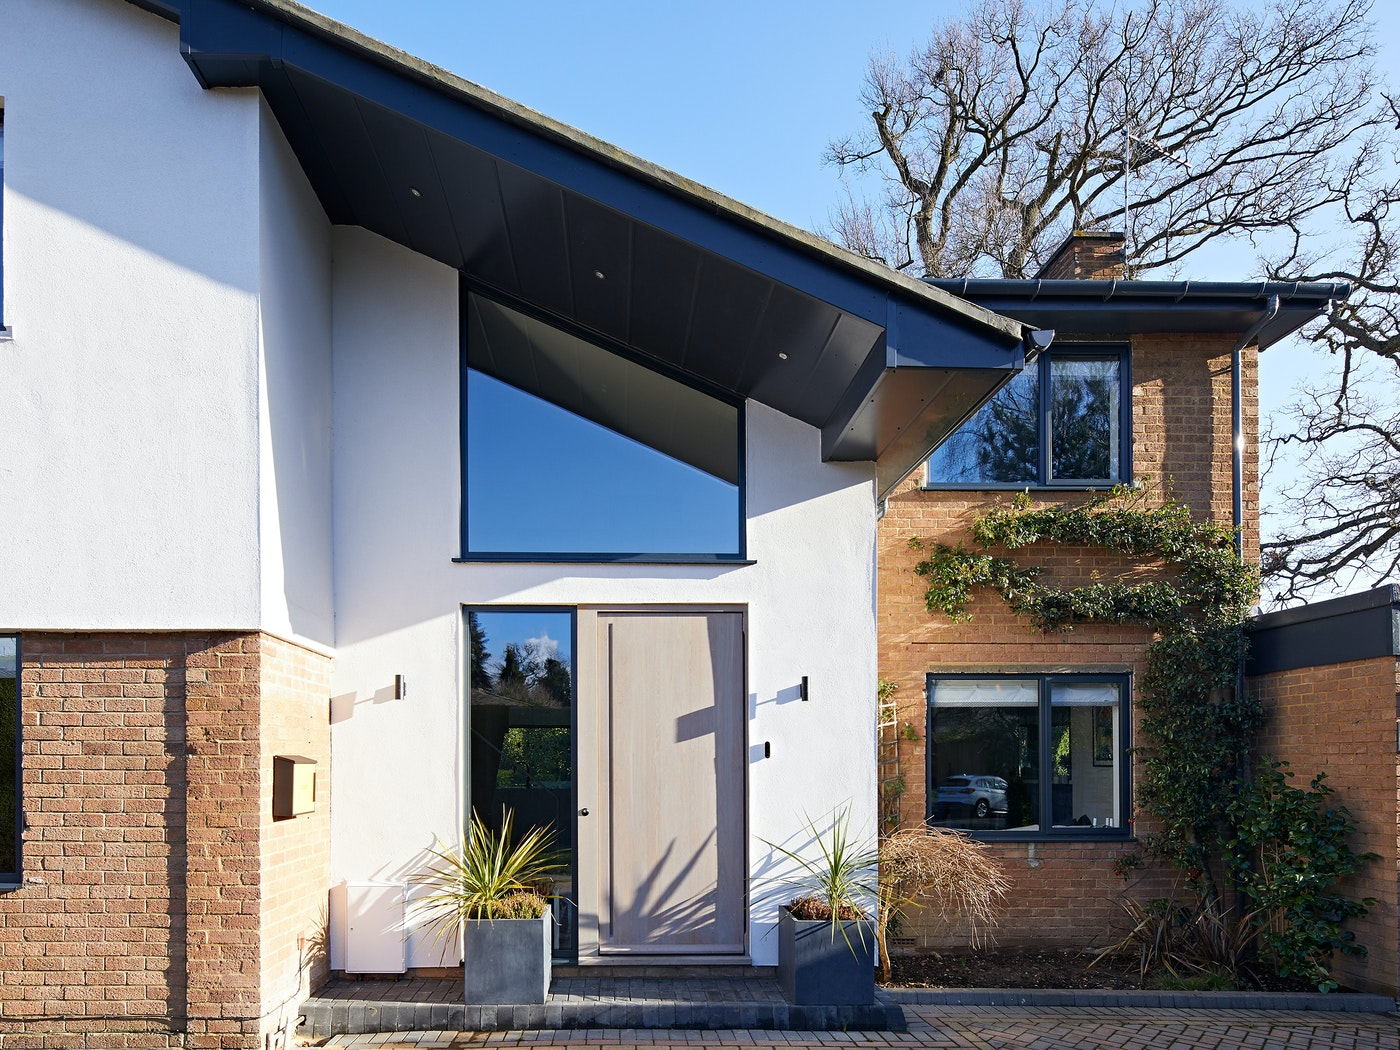 The roof & soffit of this house create an extensive overhang